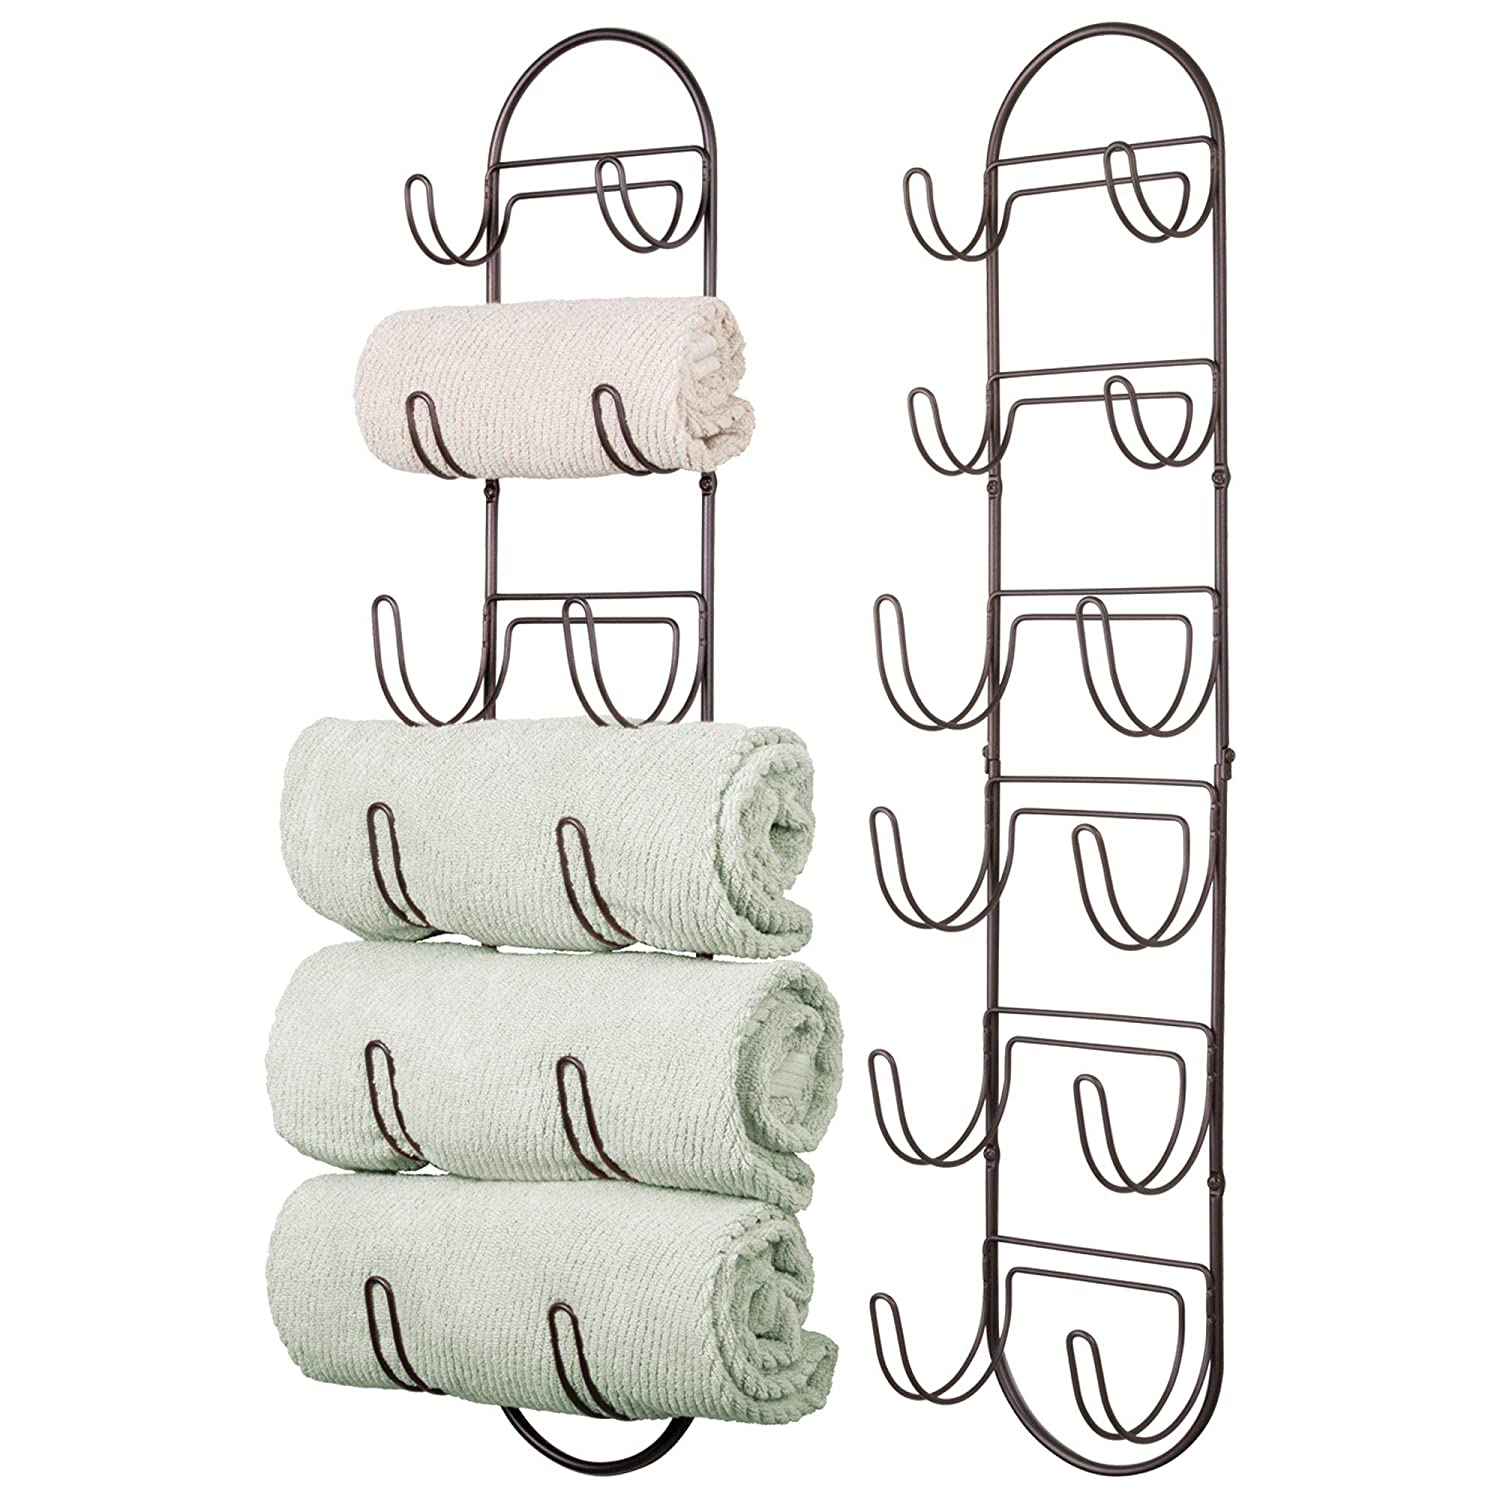 mDesign Wall Mount Towel Storage Rack with Six Compartments for Bathroom � Pack of 2, Bronze MetroDecor